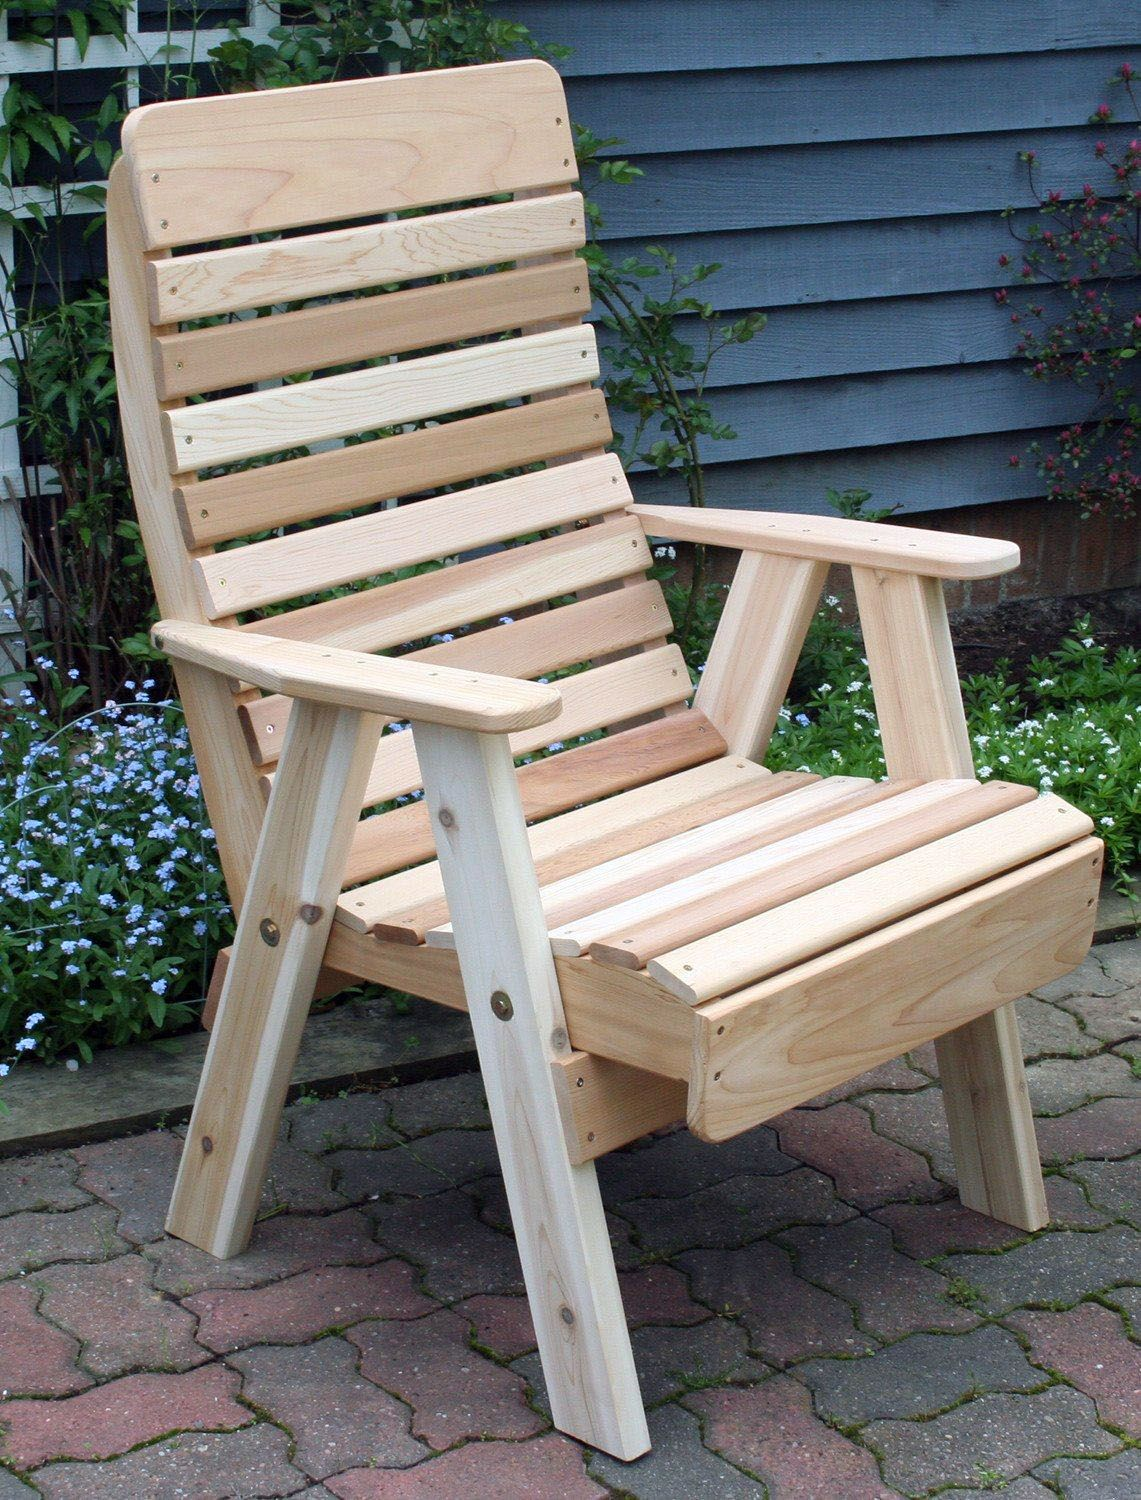 Repurposed Exterior Furnishings Projects To Smarten Up Your Space Wooden Patio Furniture Pallet Furniture Outdoor Wood Patio Chairs